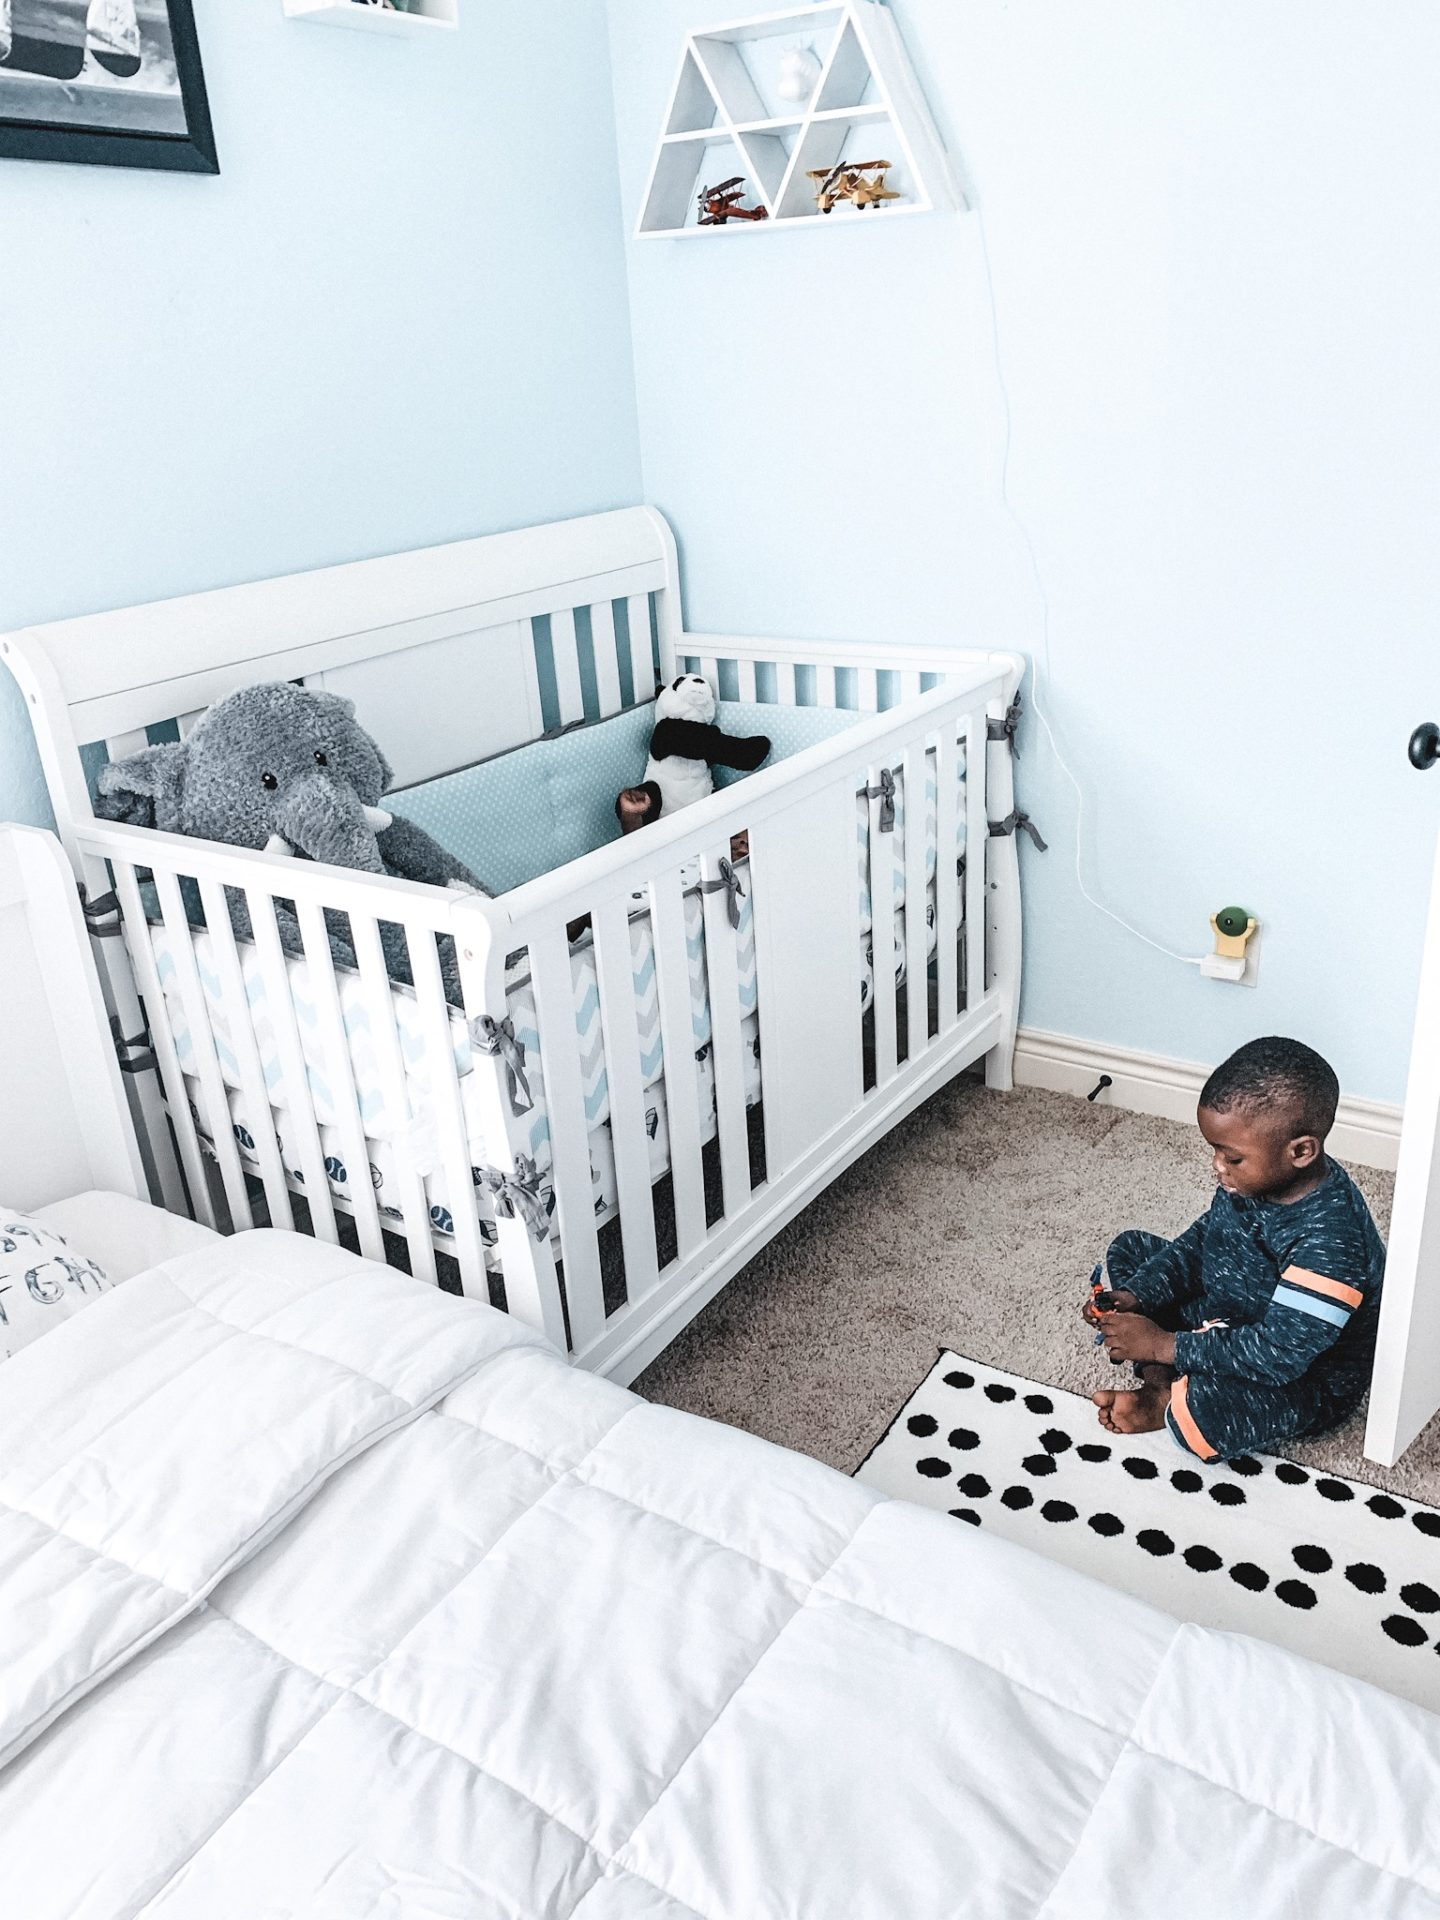 Kids Bedroom : Spring 2021 One room challenge